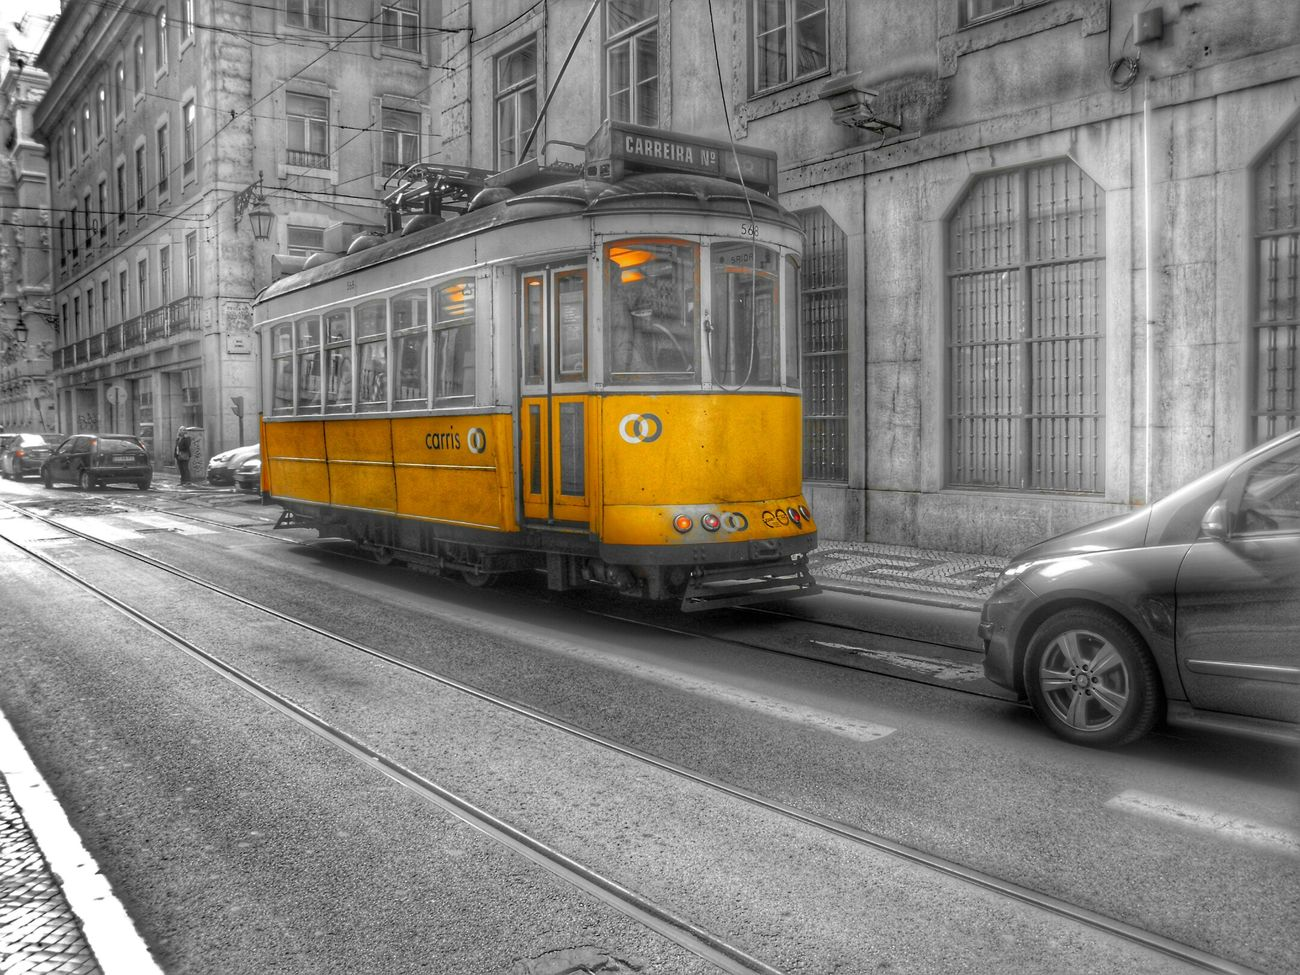 Lisboa Seeing The Sights Sight Bestpicoftheday Pixoddinary_megacolor Hdr_Collection Cityscapes Hdr_lovers Lisboa Portugal Lisbon Hdroftheday Hdr_gallery Hdr_arts  Lisboa Hdr_pics Carreira Hdrphotography